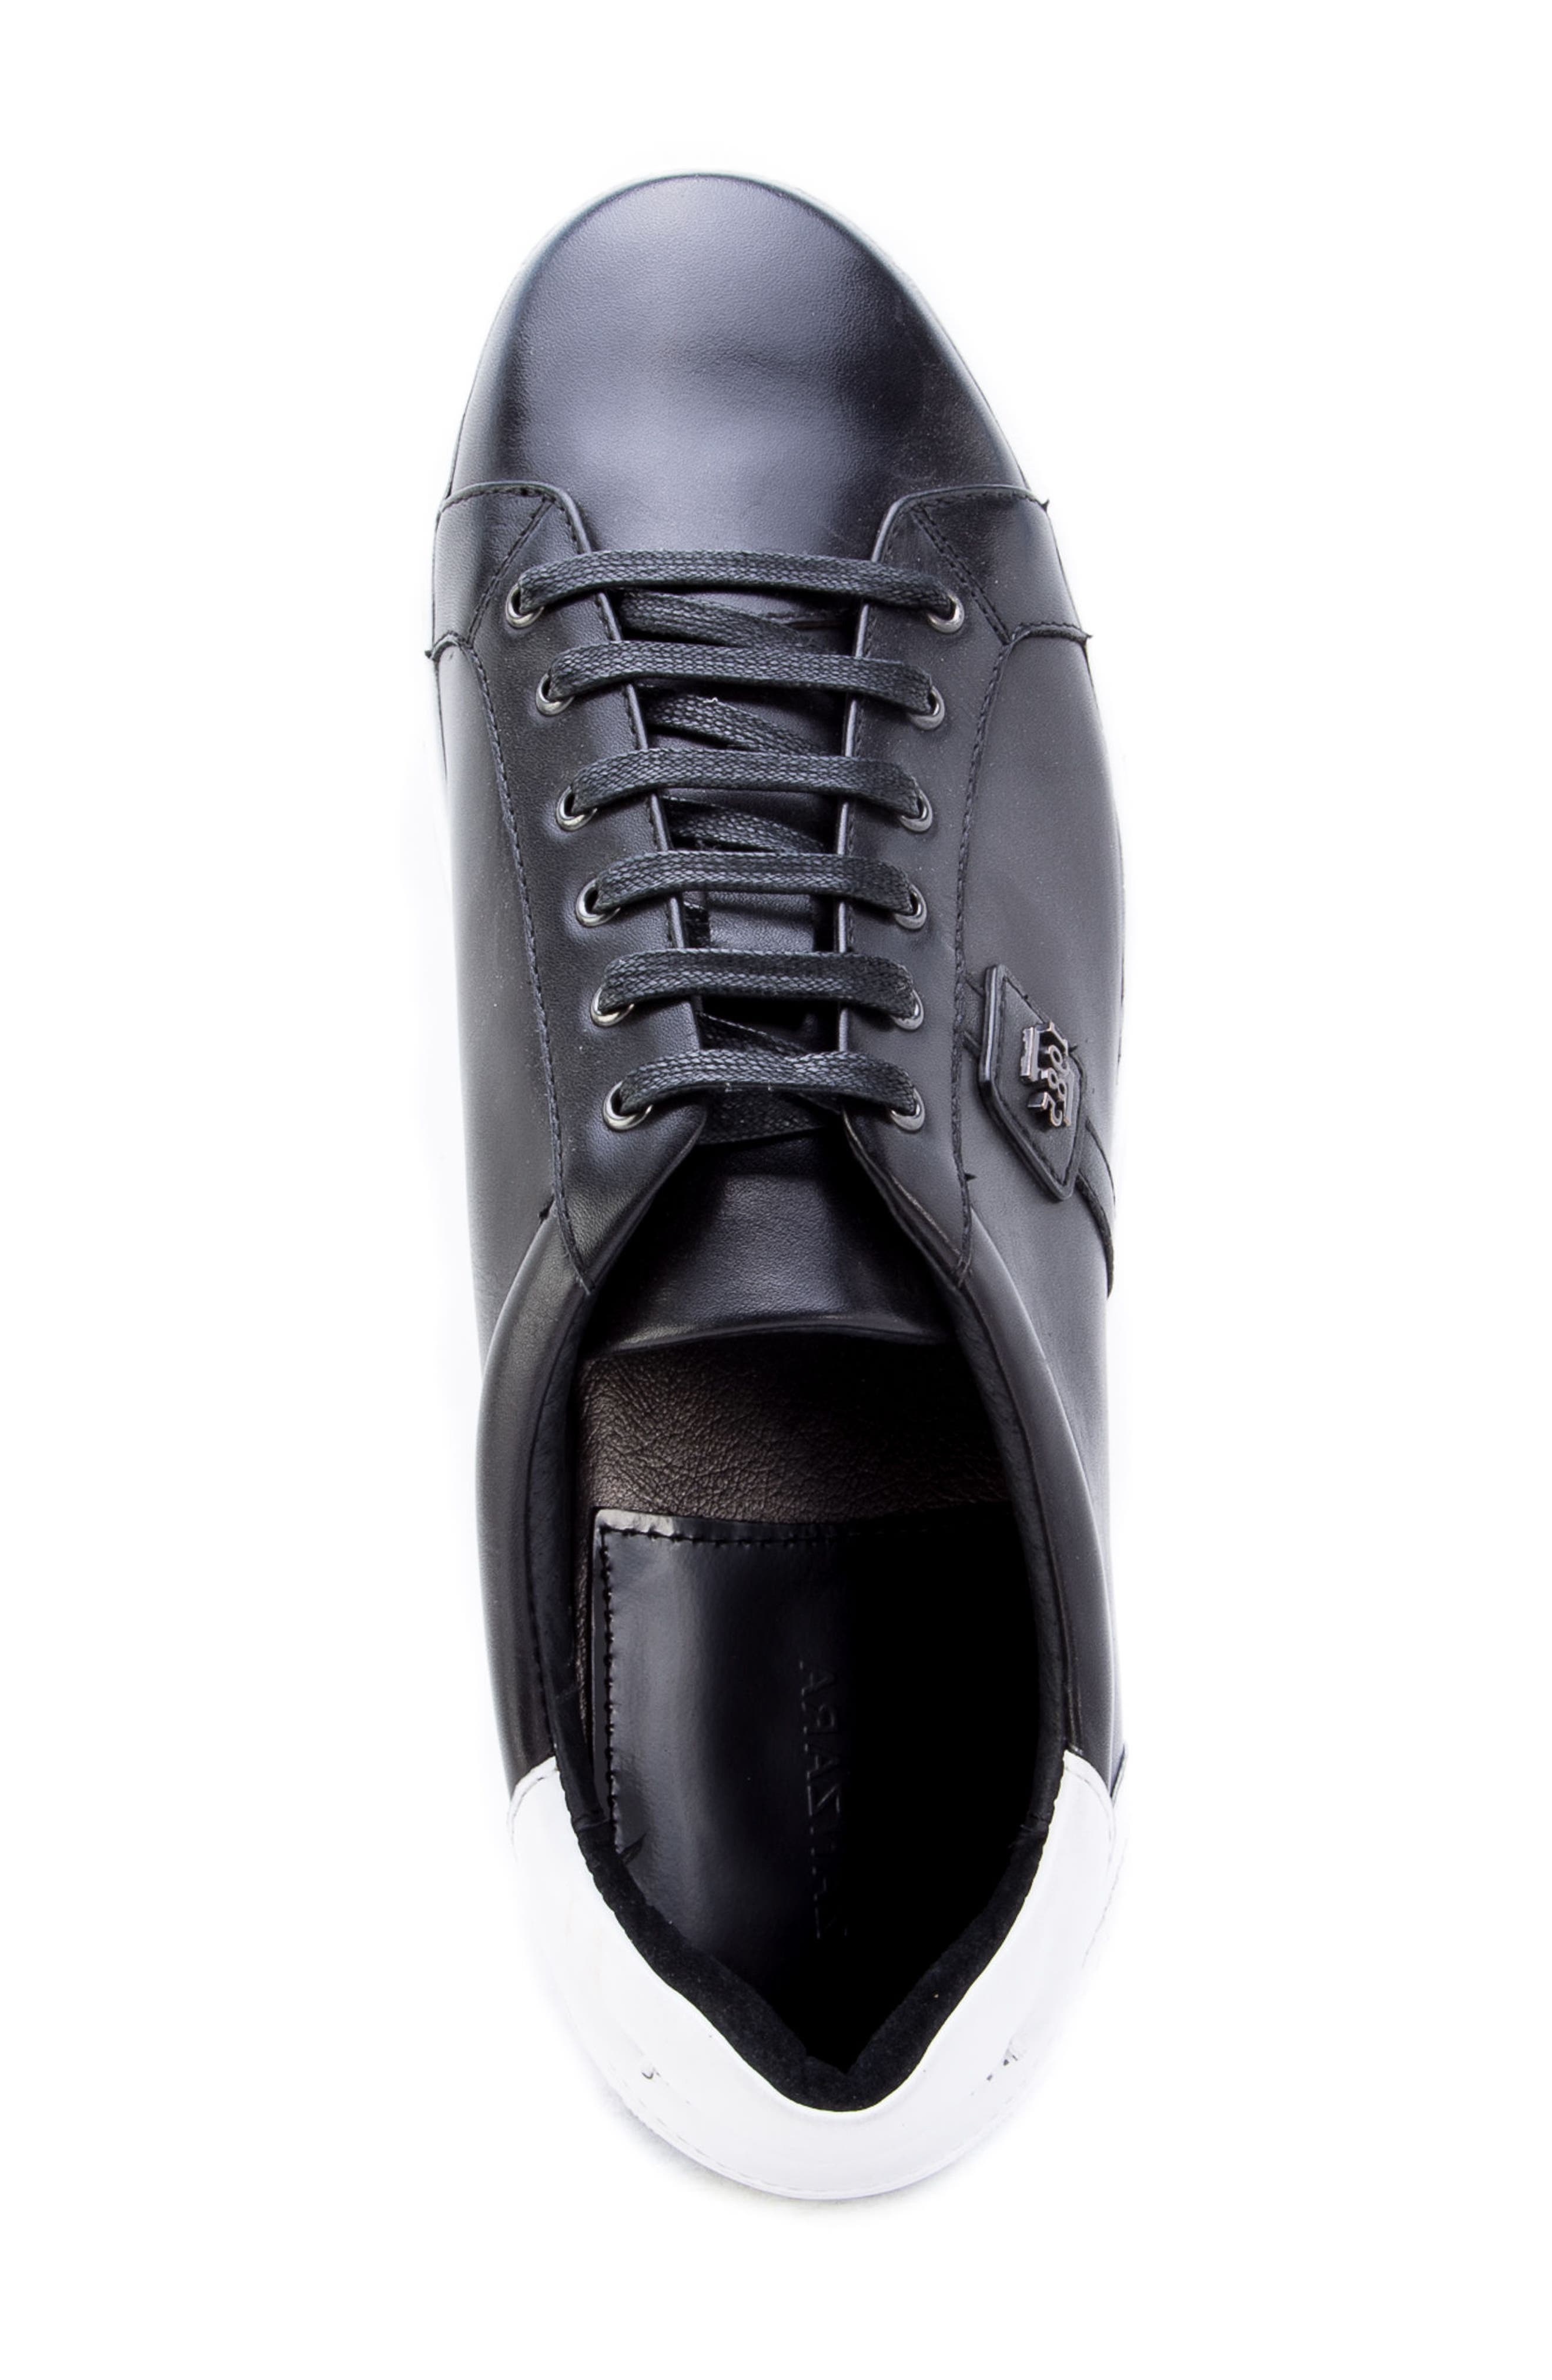 Scheffer Low Top Sneaker,                             Alternate thumbnail 5, color,                             BLACK LEATHER